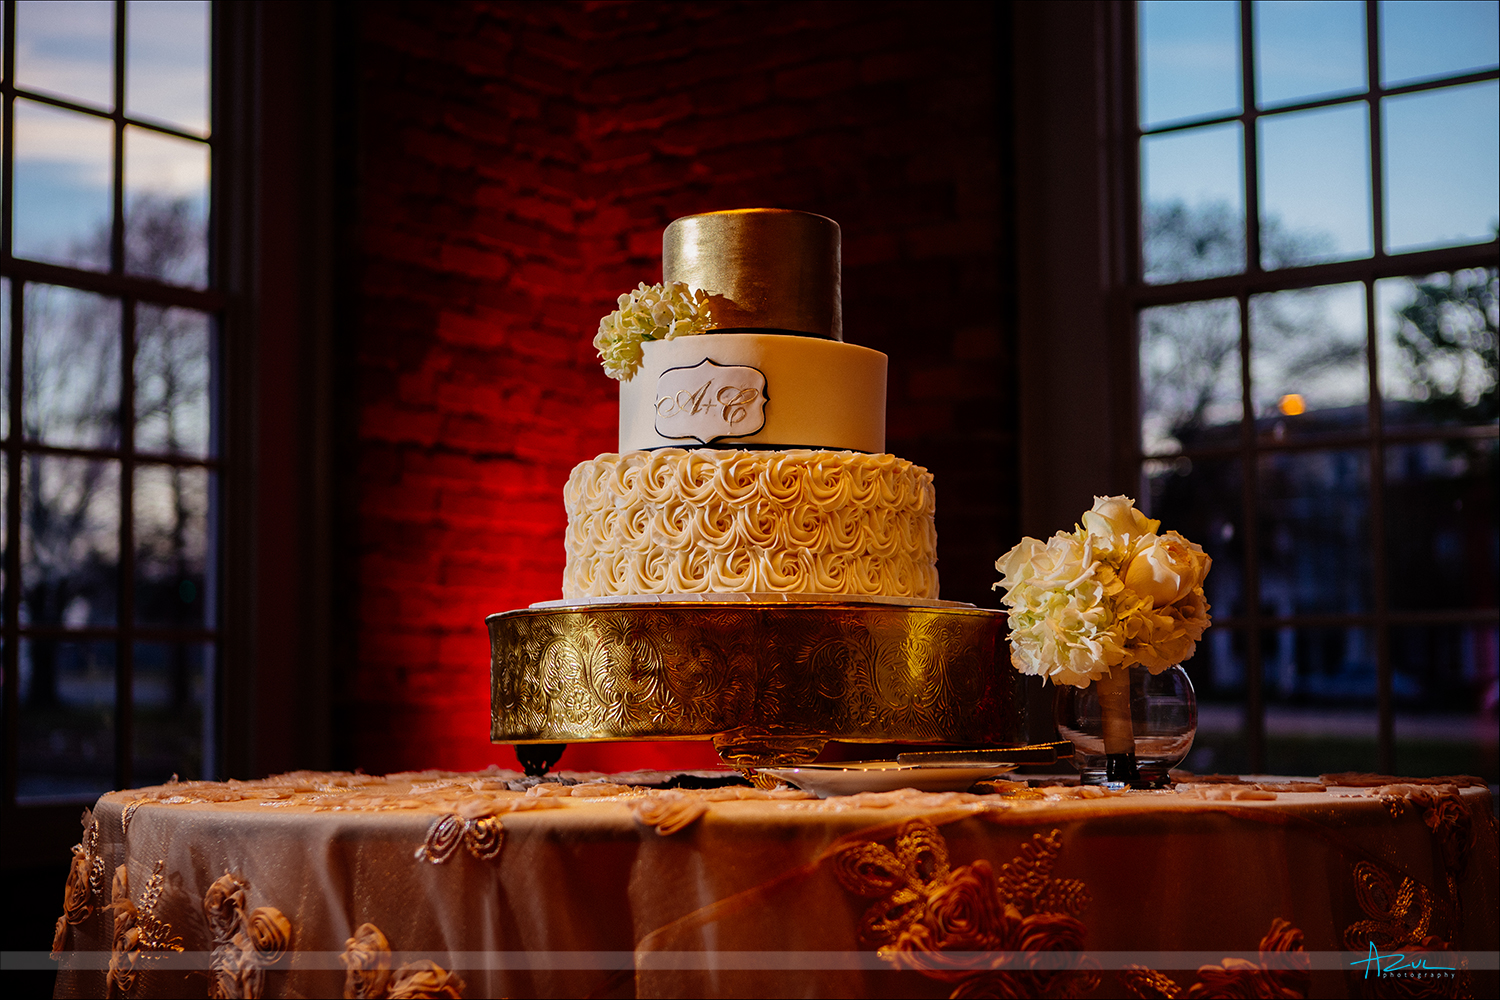 Perfect wedding day cake for the couple and the details were delicious and amazing at The Cotton Room in Durham NC